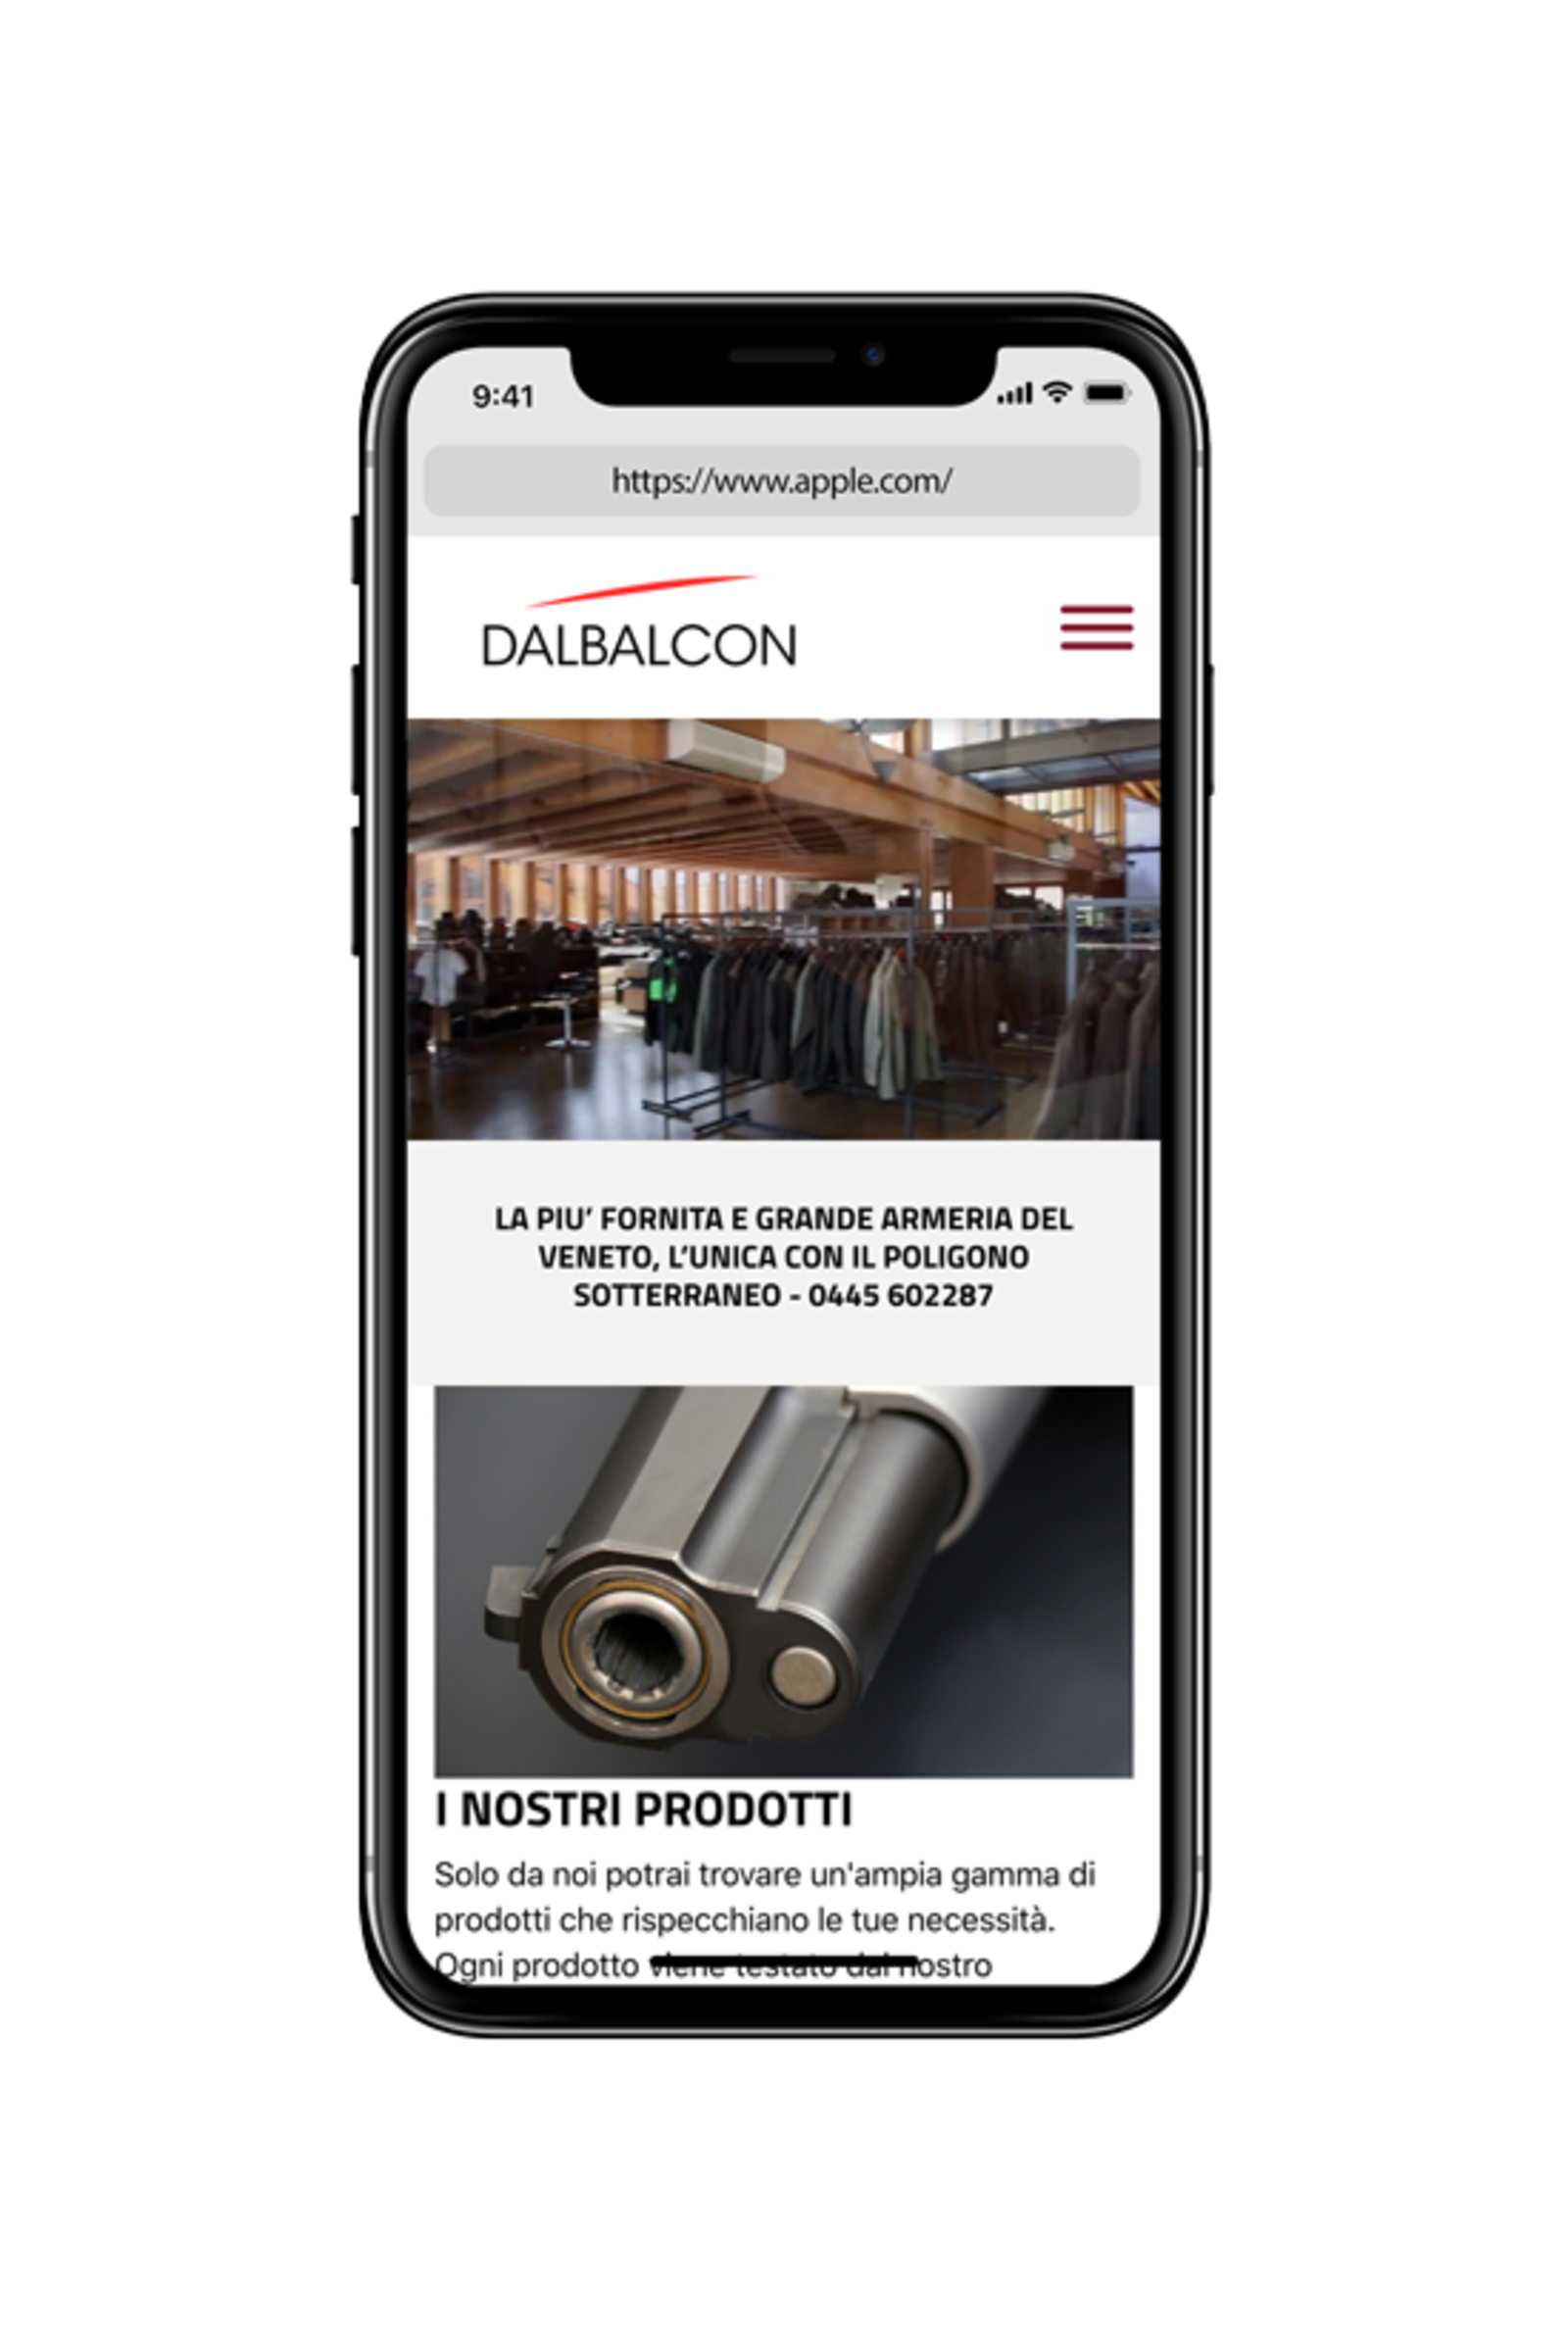 Iphone X that displays the home page of the Armeria Dal Balcon site